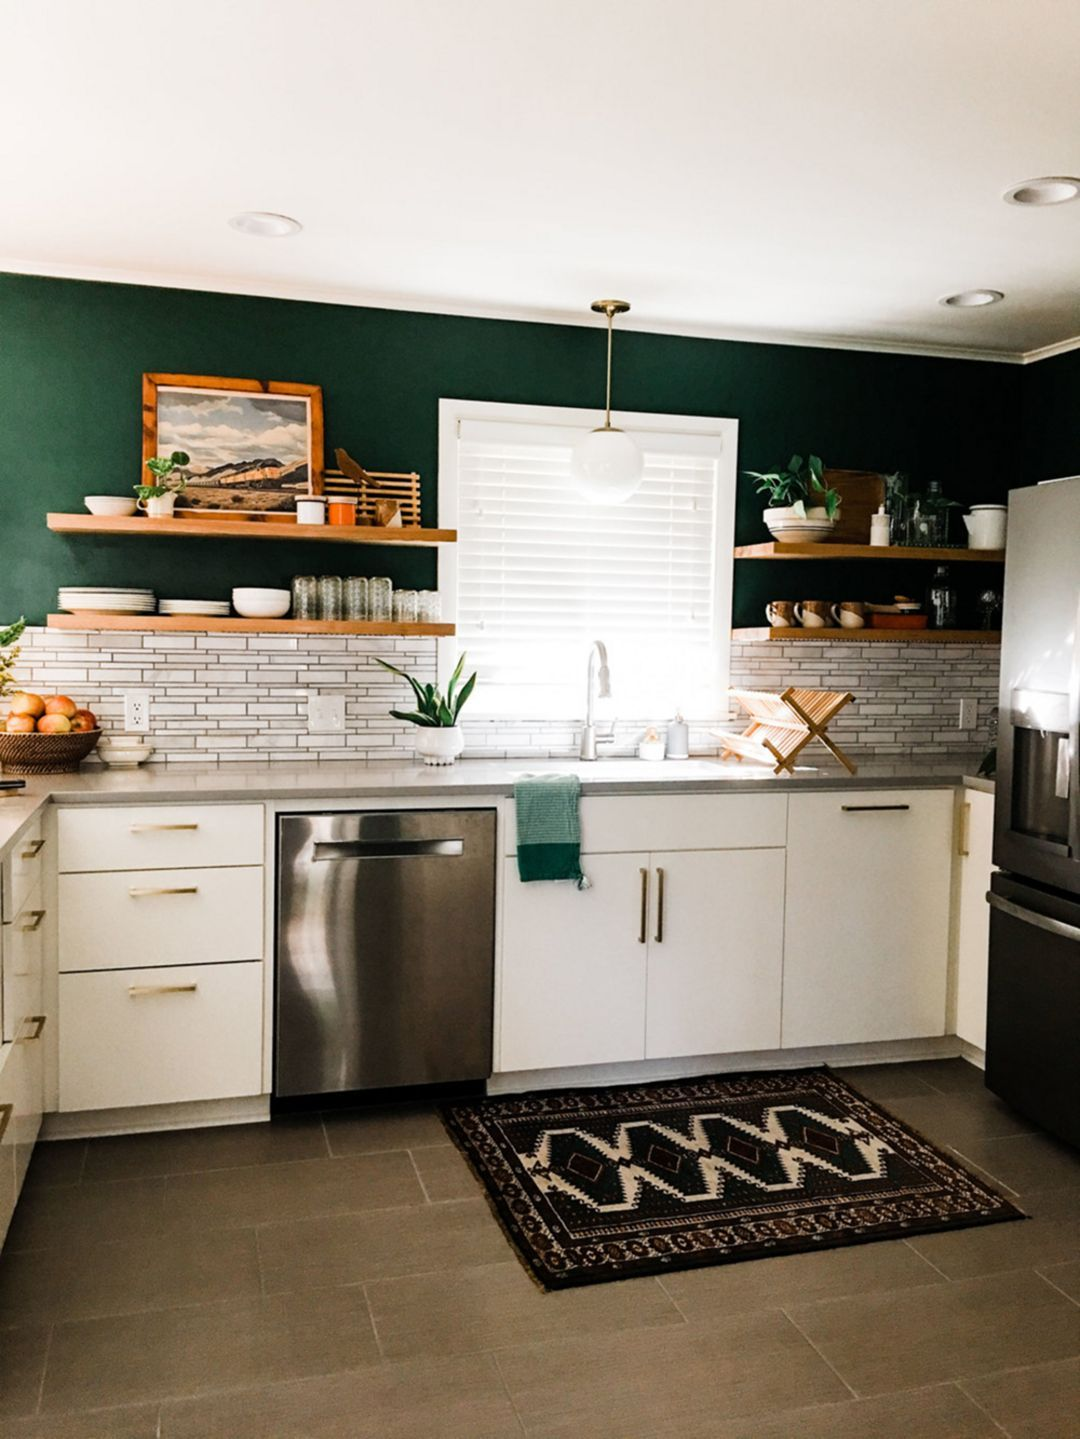 Best 15 Fabulous Small Kitchen Design And Decor Ideas For Your 400 x 300